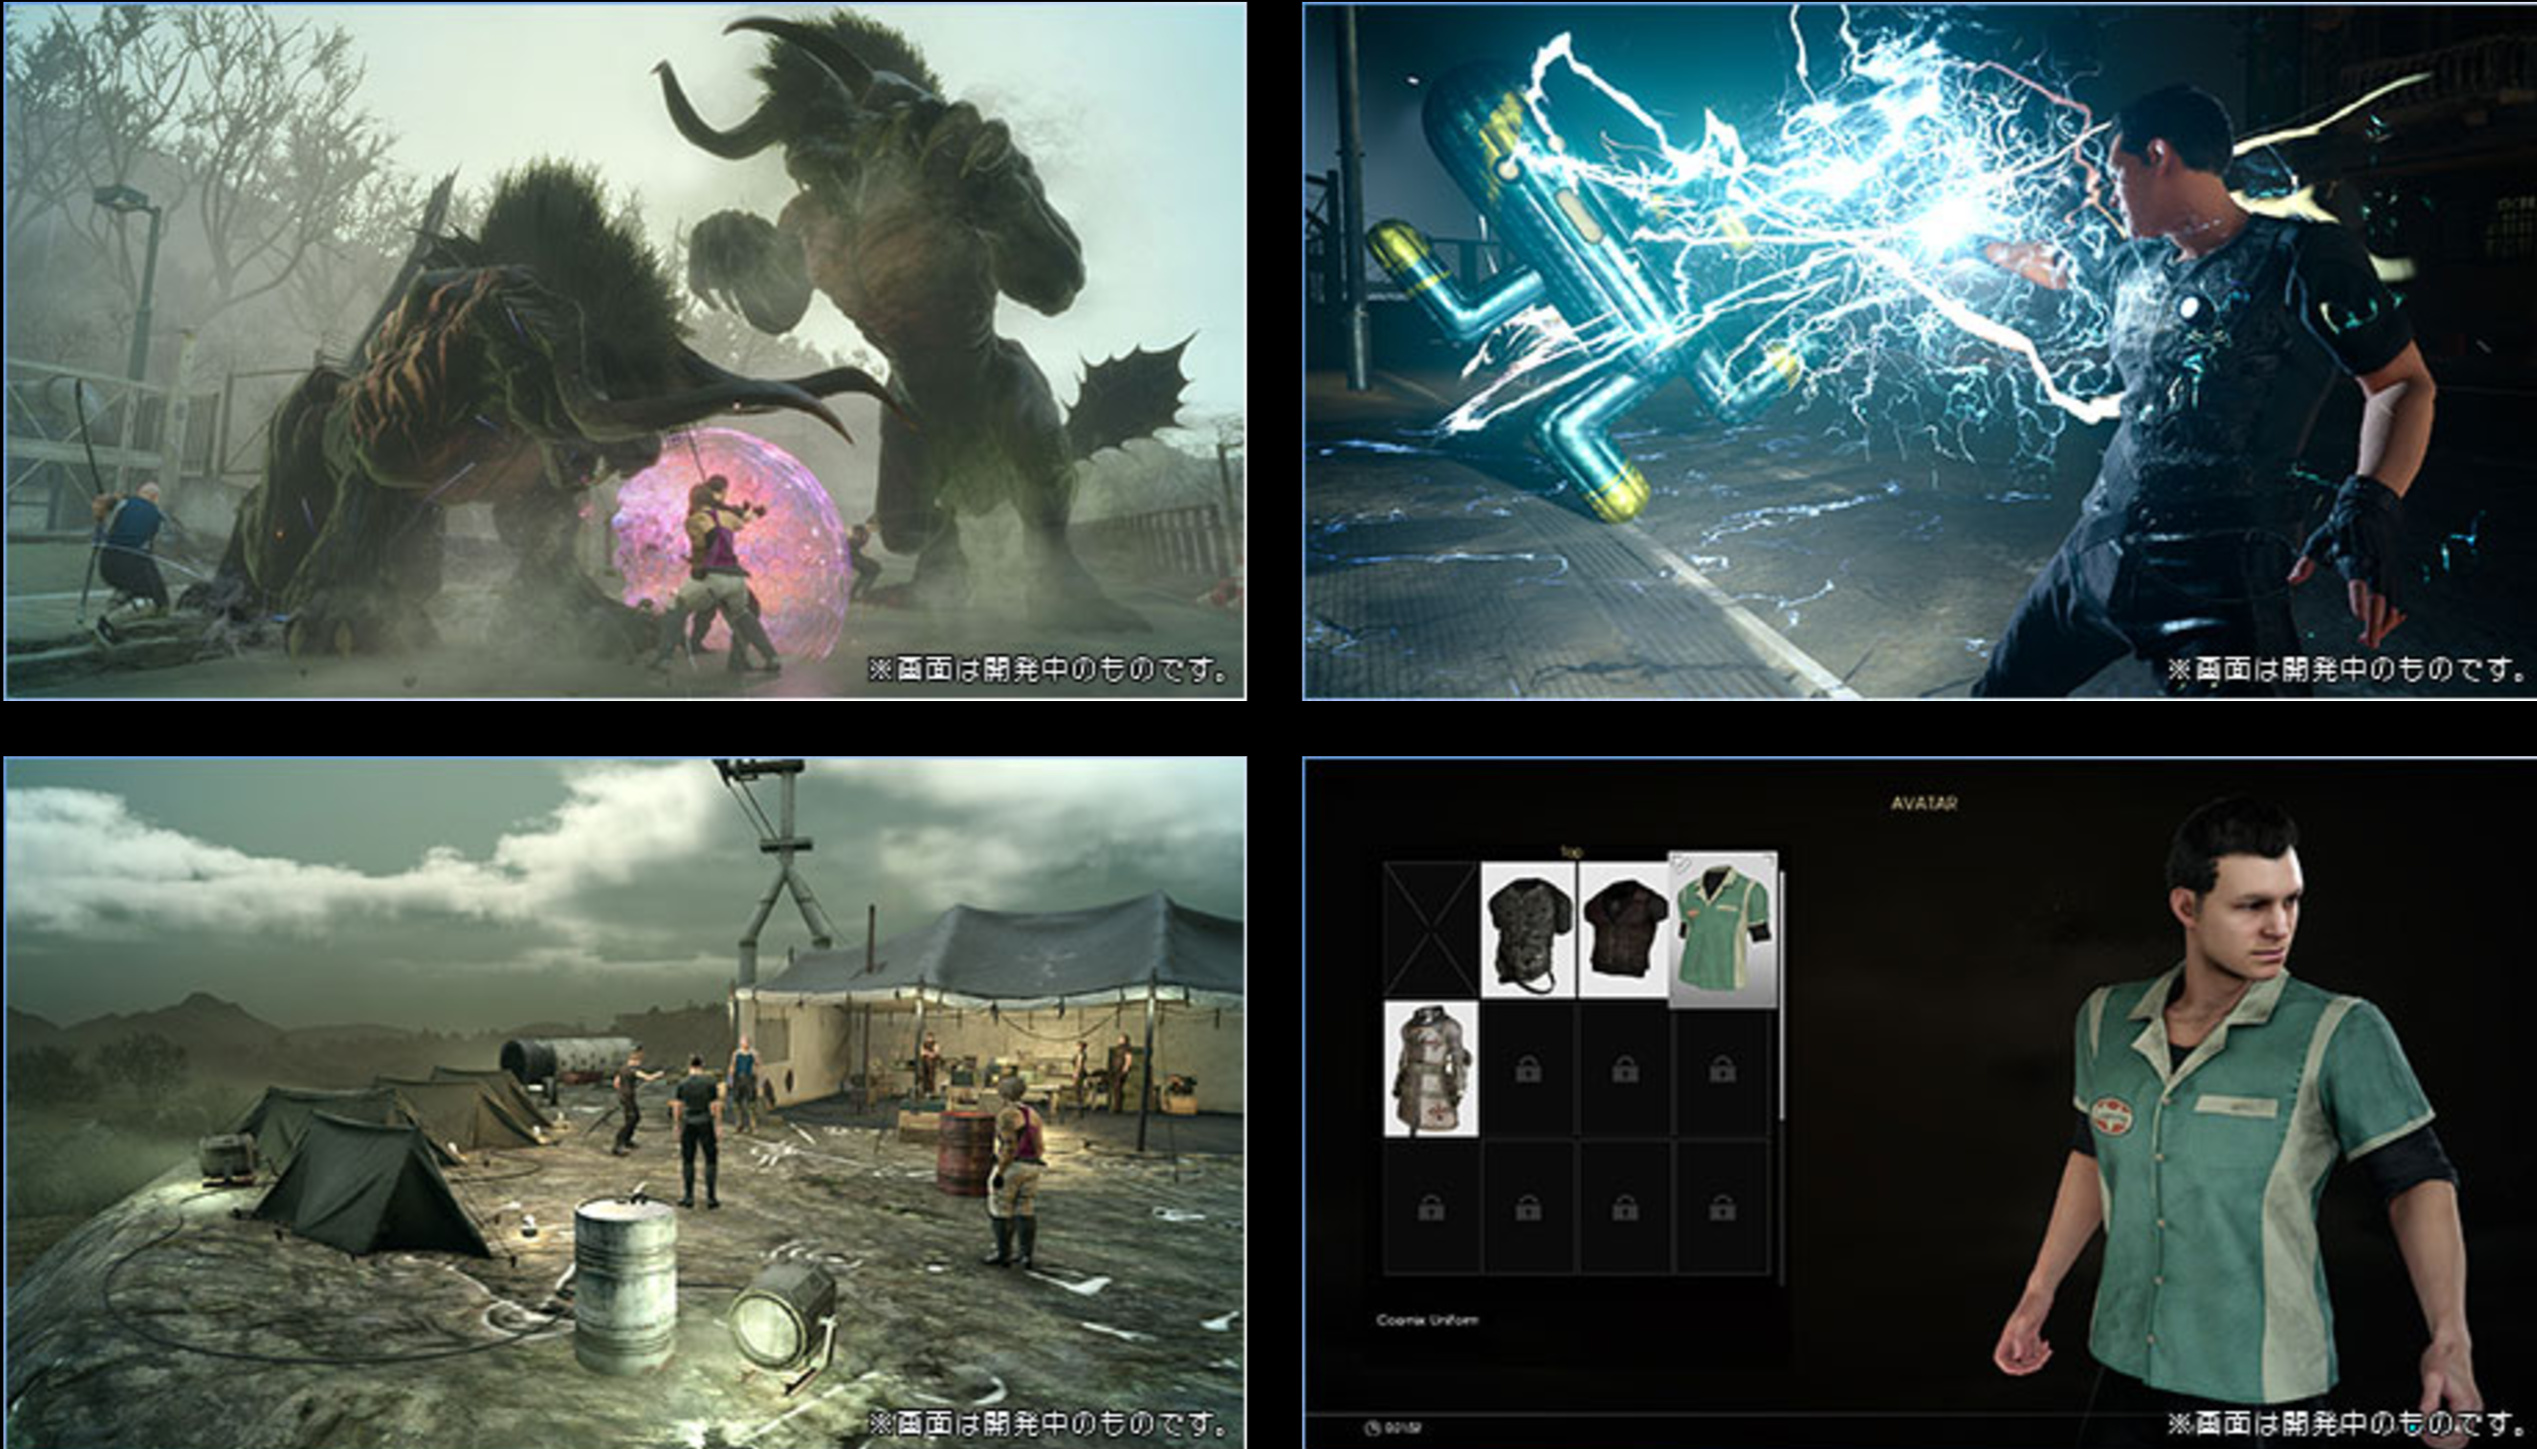 Square Enix Reveals Final Fantasy XV Multiplayer Mode Details & Screenshots